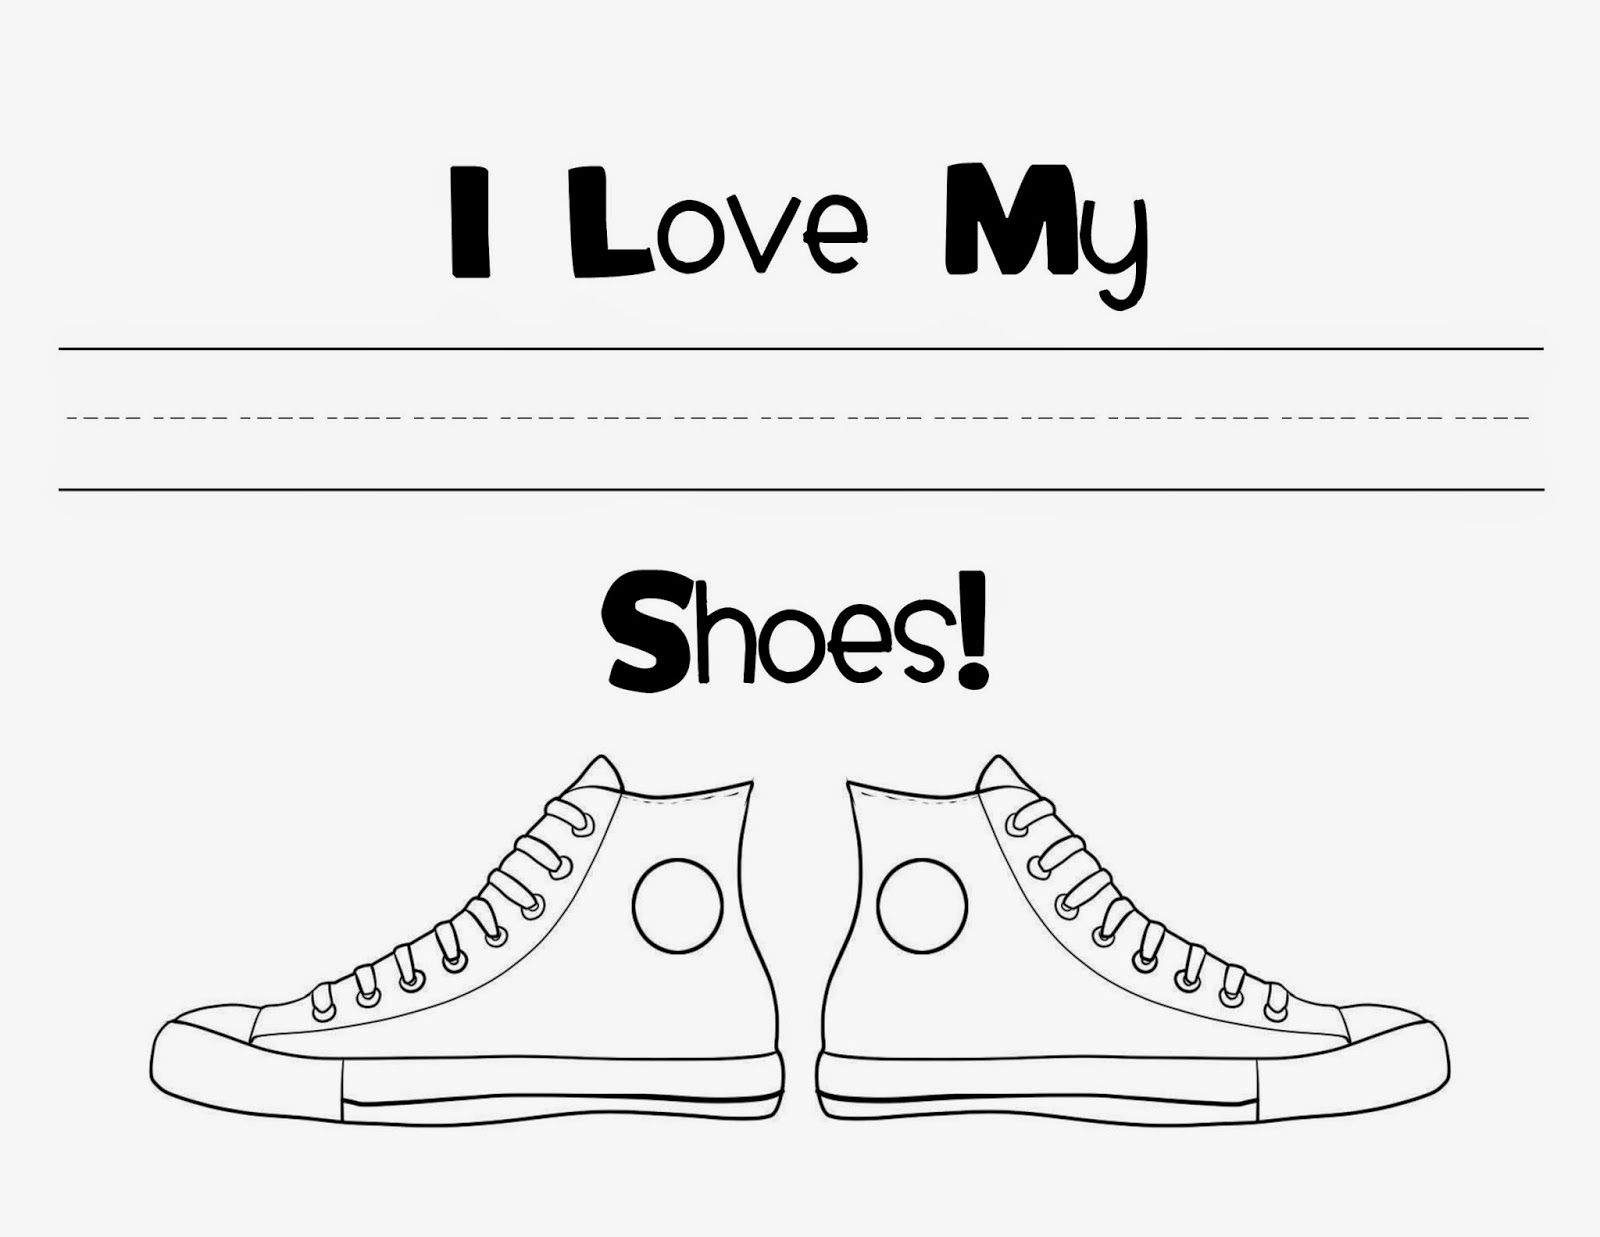 pete the cat i love my white shoes pete the cat i love my white